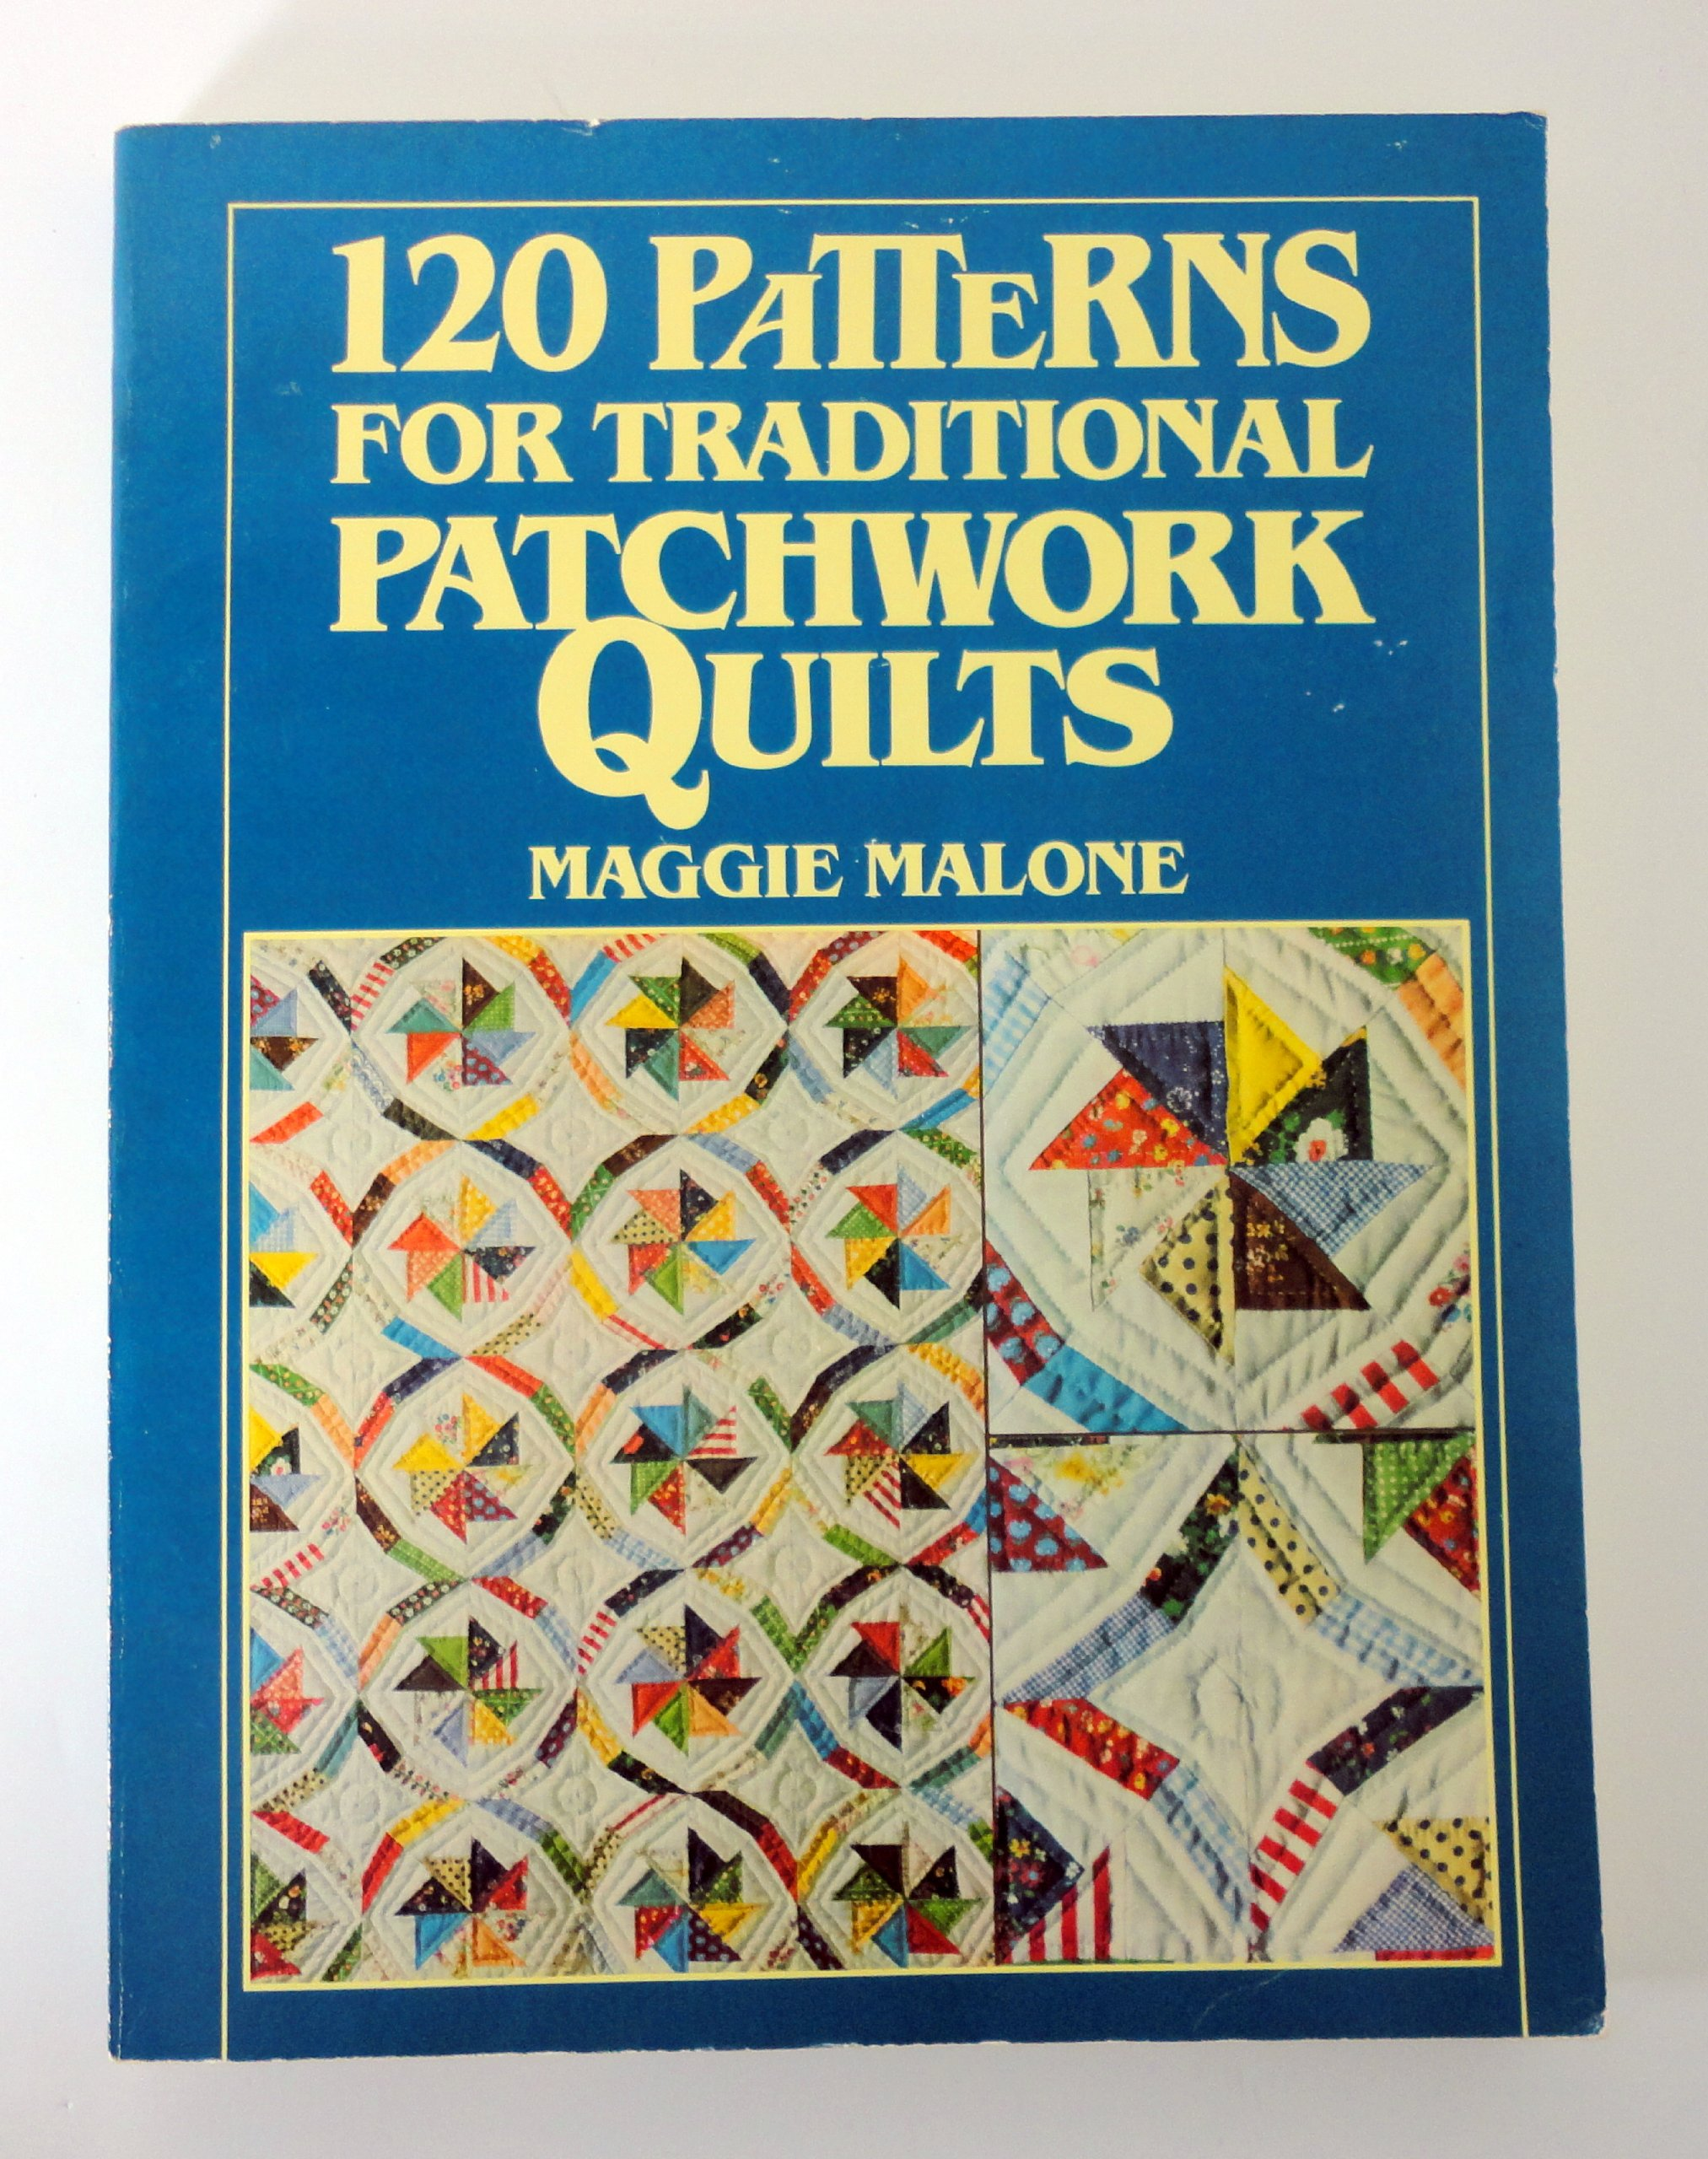 120 Patterns For Traditional Patchwork Quilts Maggie Malone